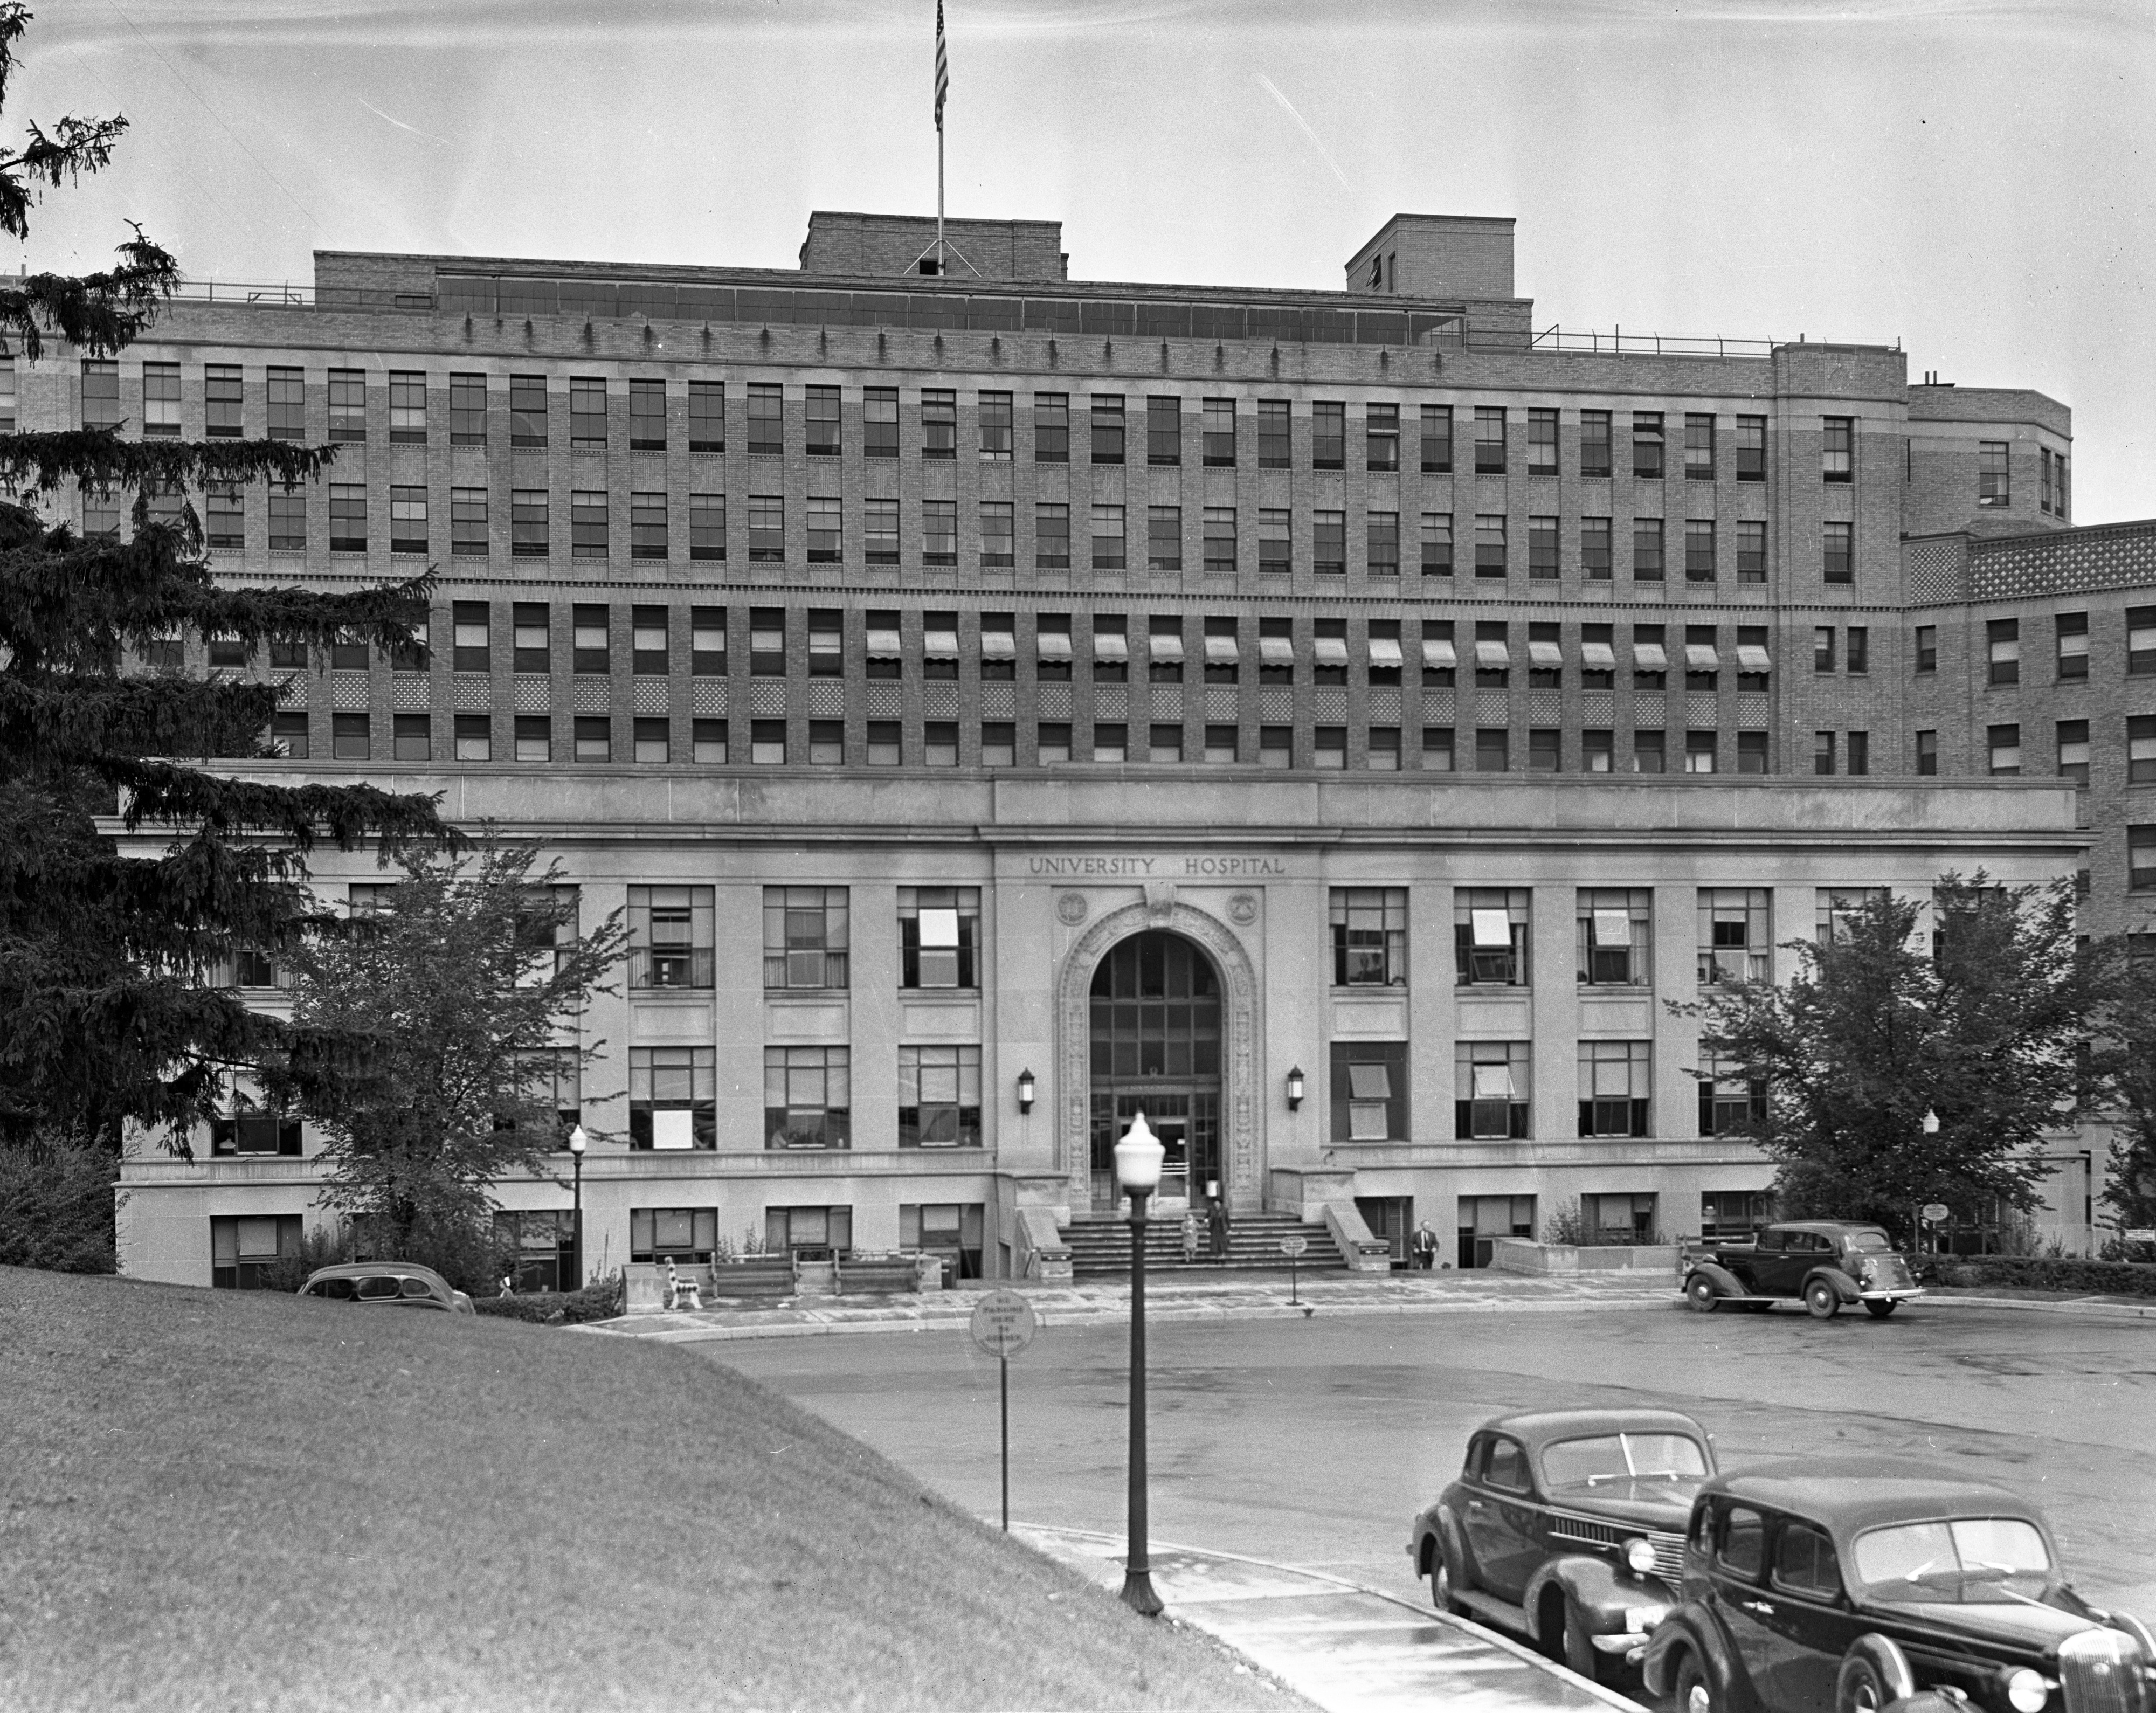 University of Michigan Hospital, 1938 image